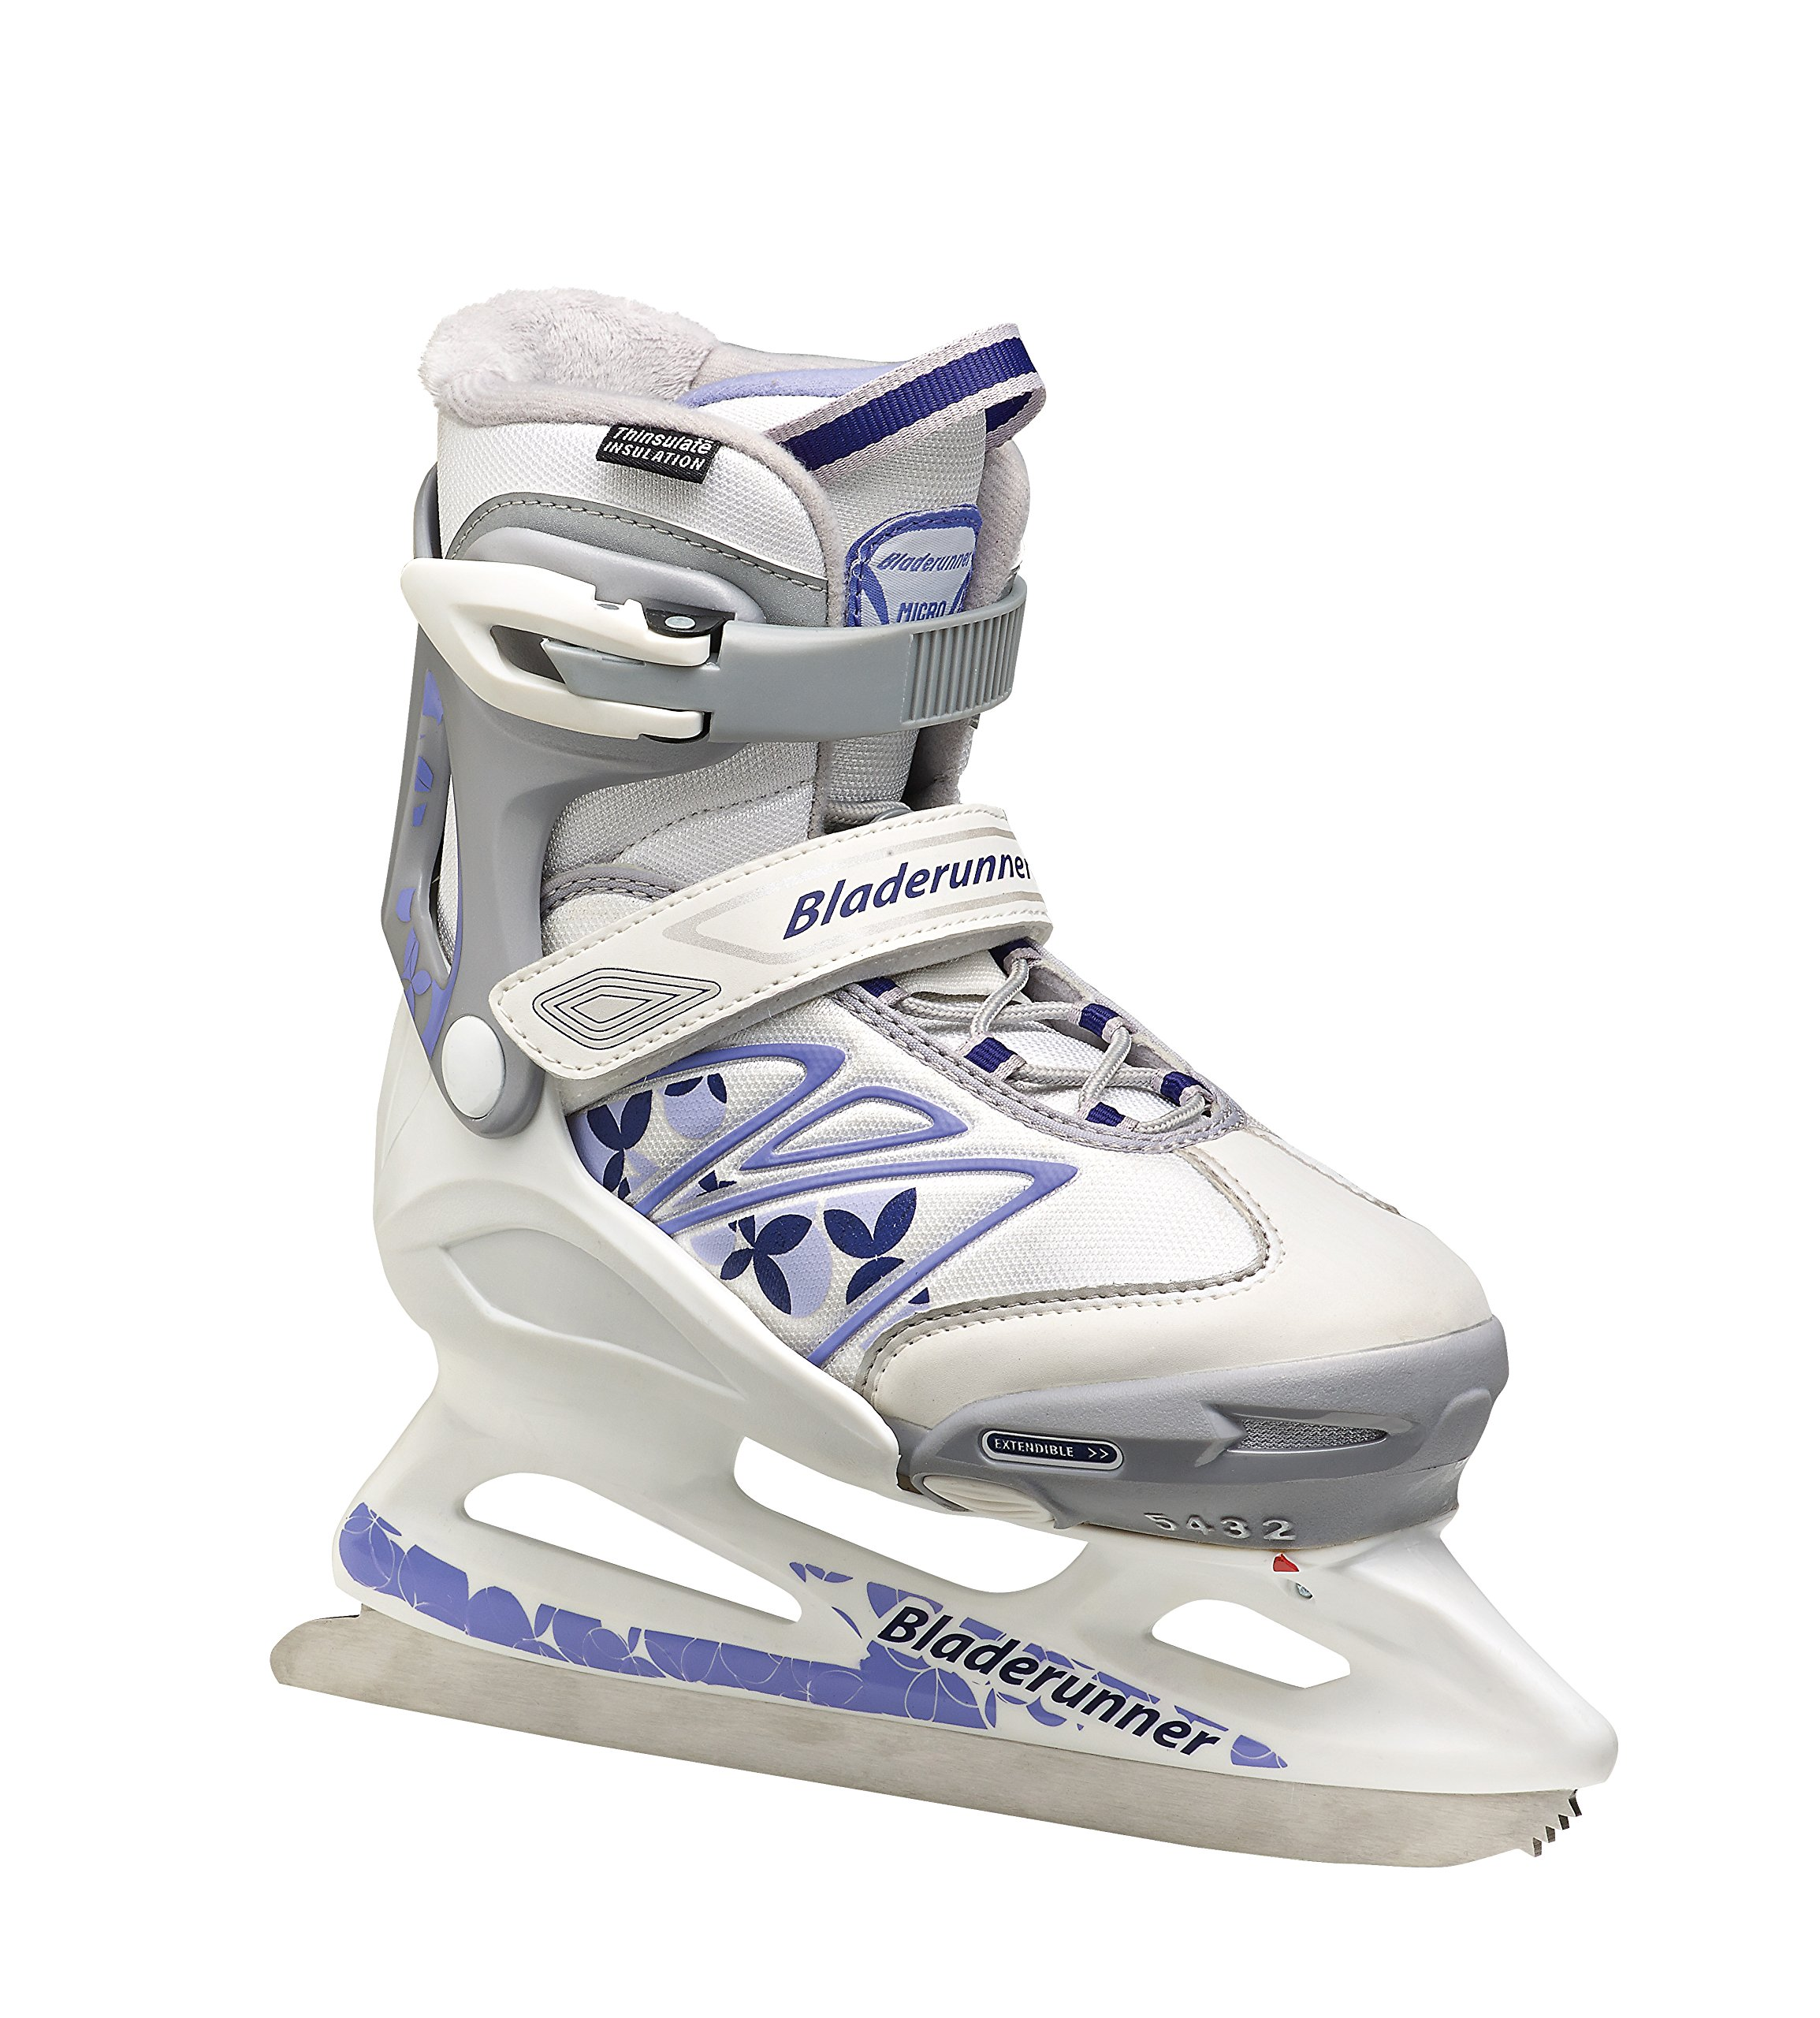 Bladerunner Youth Ice Micro XT G Skate, Size 5-8, White/Purple